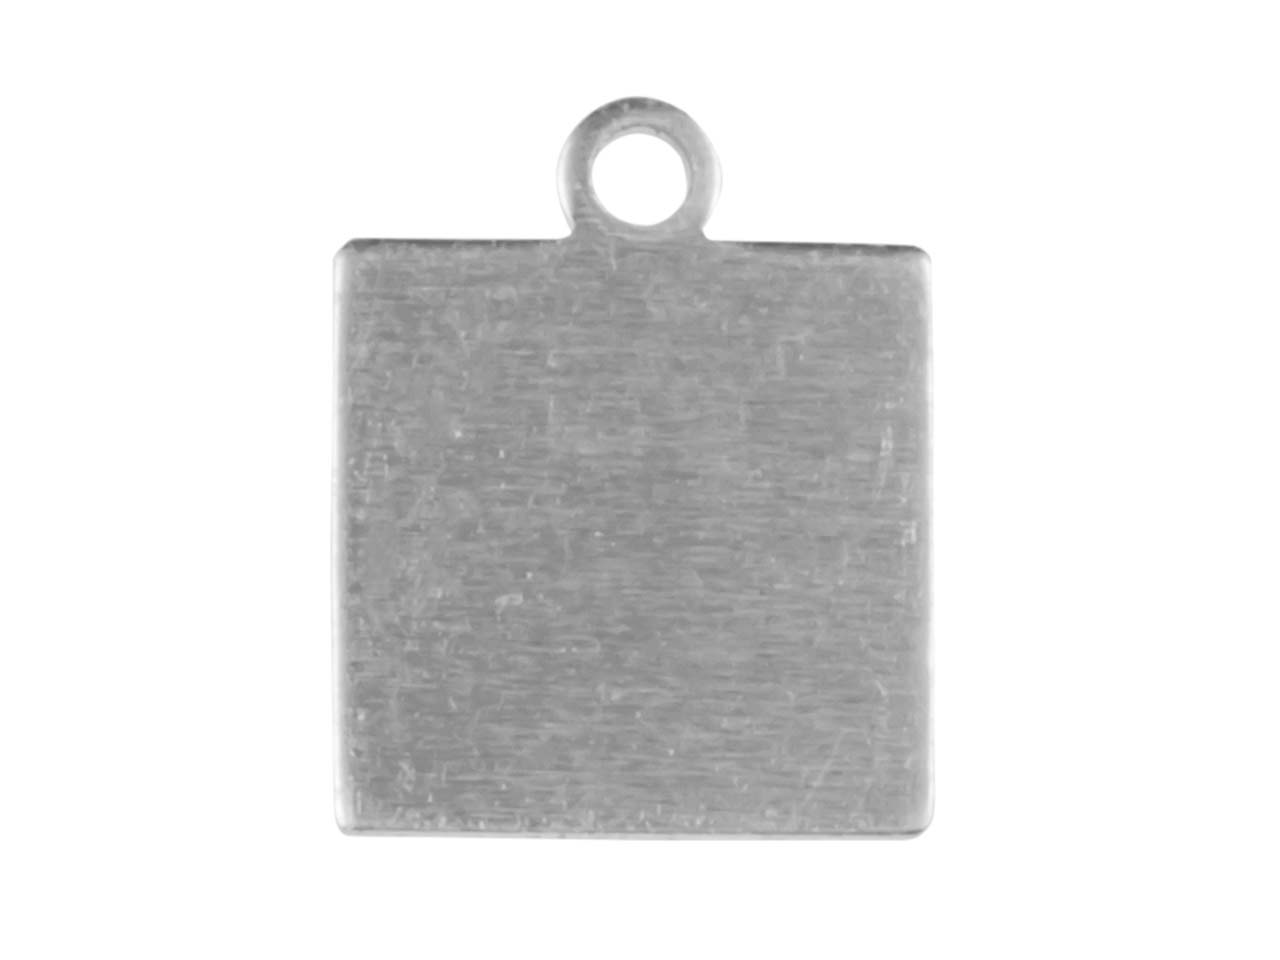 Impressart Aluminium Small Square  Tag 10mm Stamping Blank Pack of 20